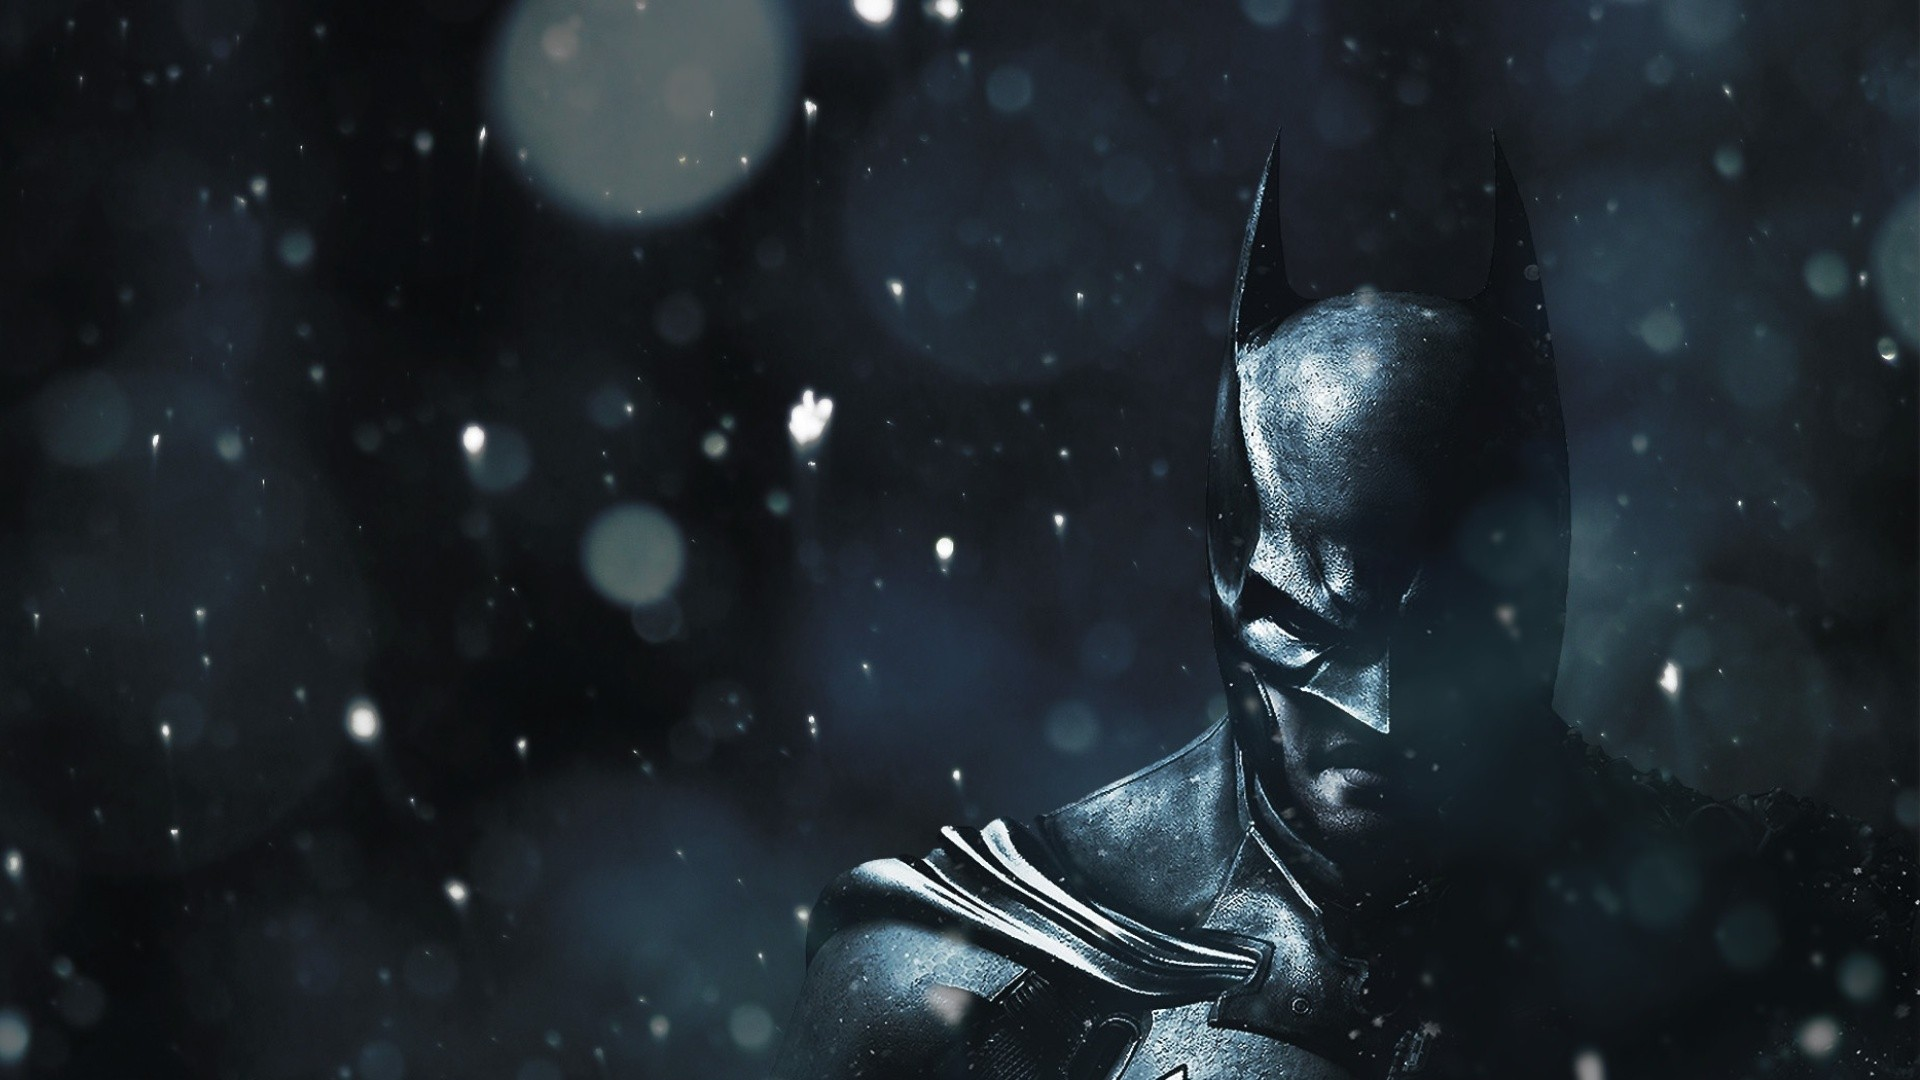 Batman arkham knight wallpapers hd wallpapers Description download 1920x1080